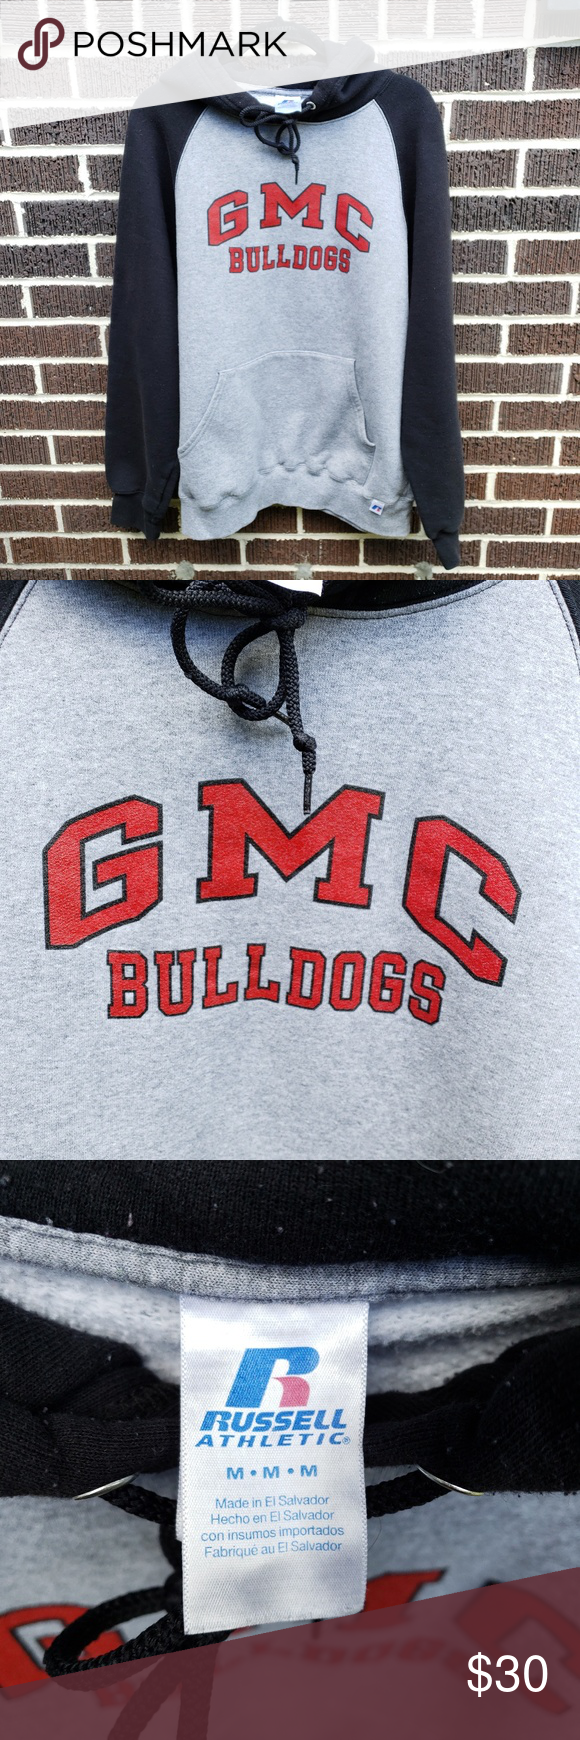 Georgia Military College Hoodie Go Gmc Bulldogs Woot Purchased In The Fall Winter 2016 While My Son Attended Th College Hoodies Athletic Shirts Hoodies